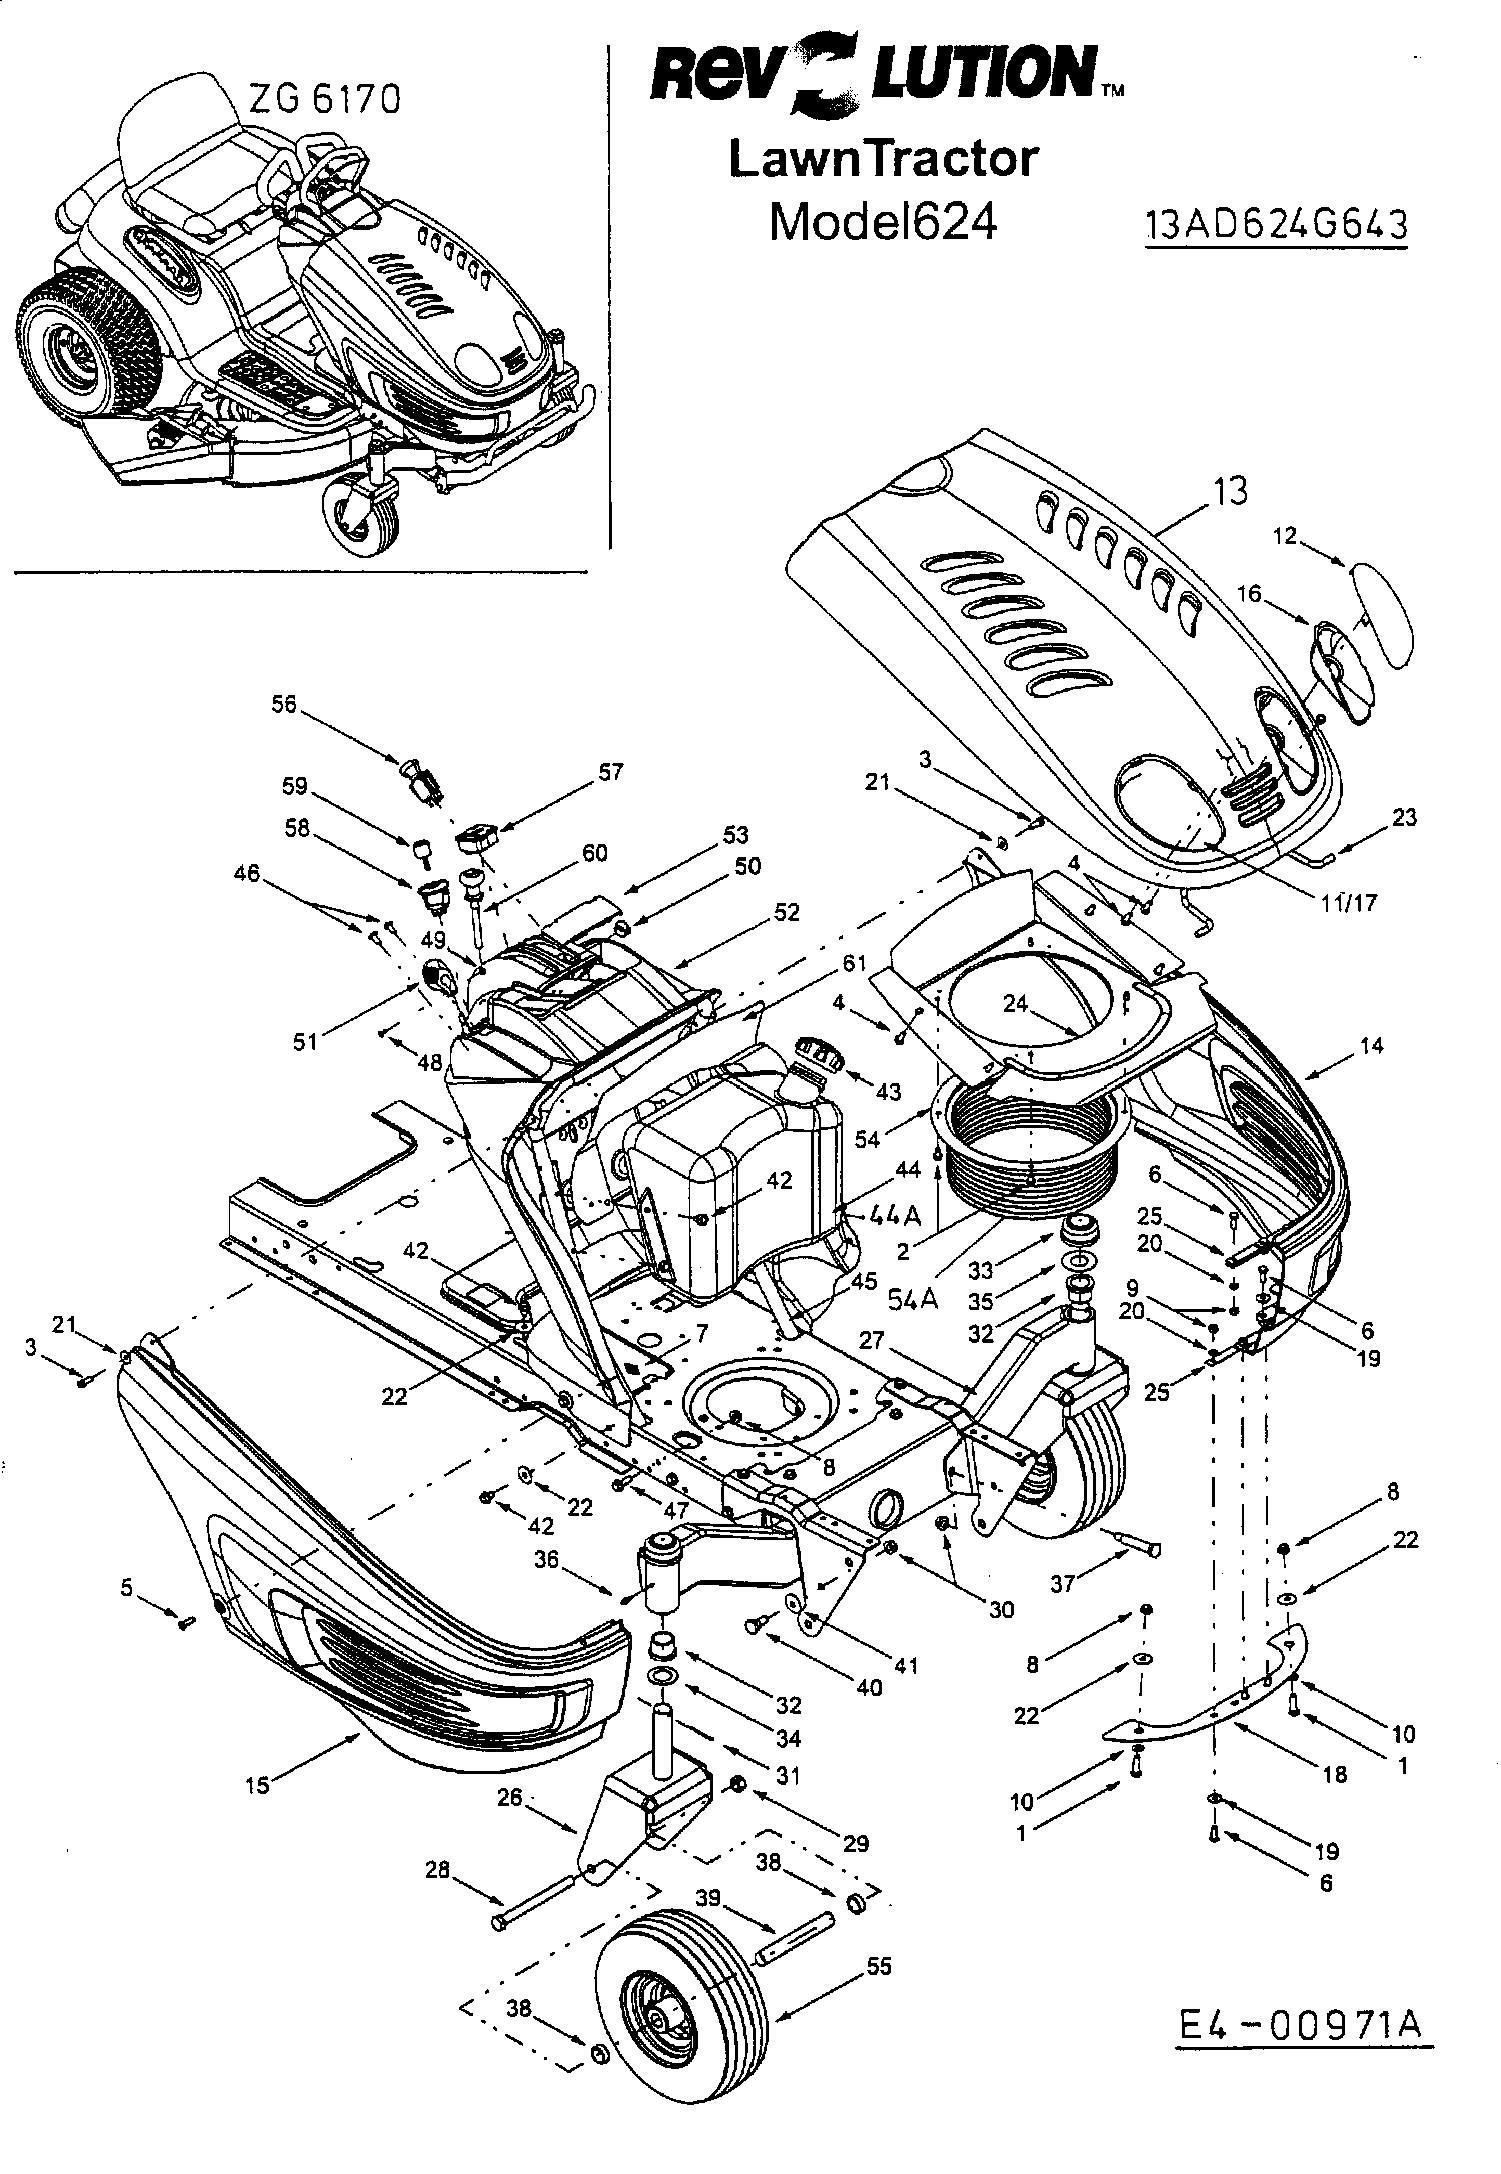 9 Pole Stator Wiring Diagram Auto Electrical